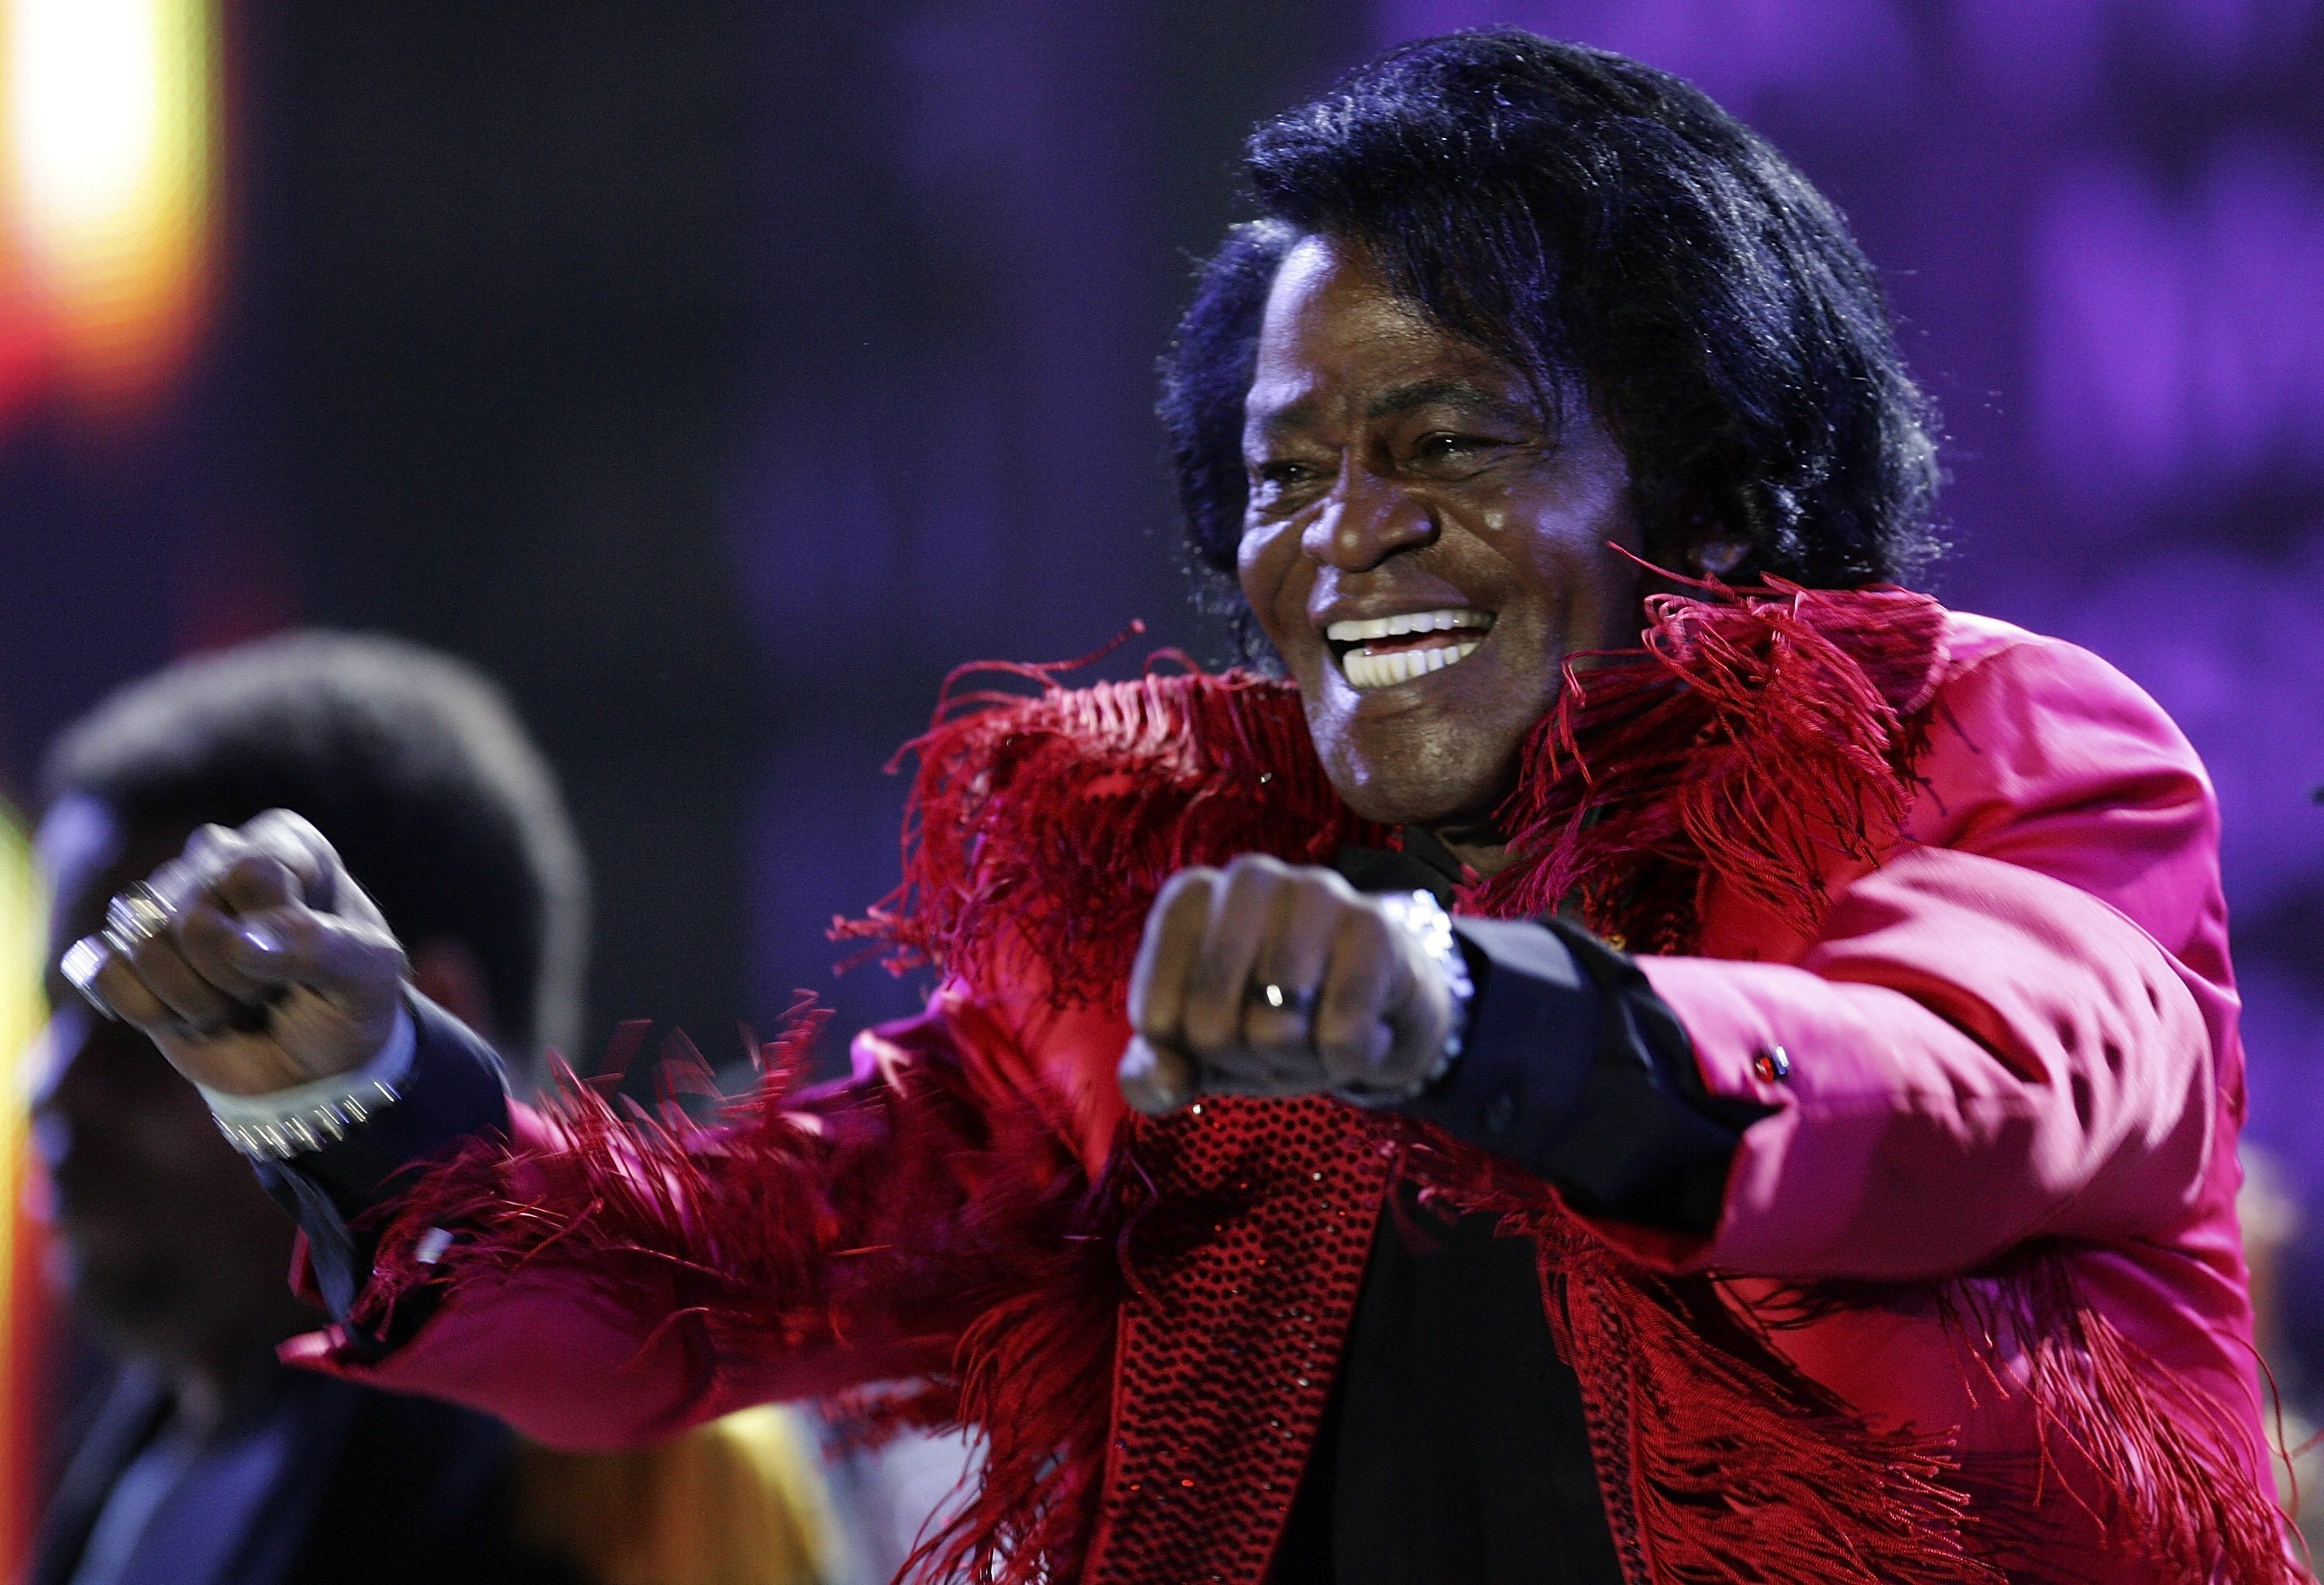 James Brown during a performance | Getty Images/ Global Images Ukraine